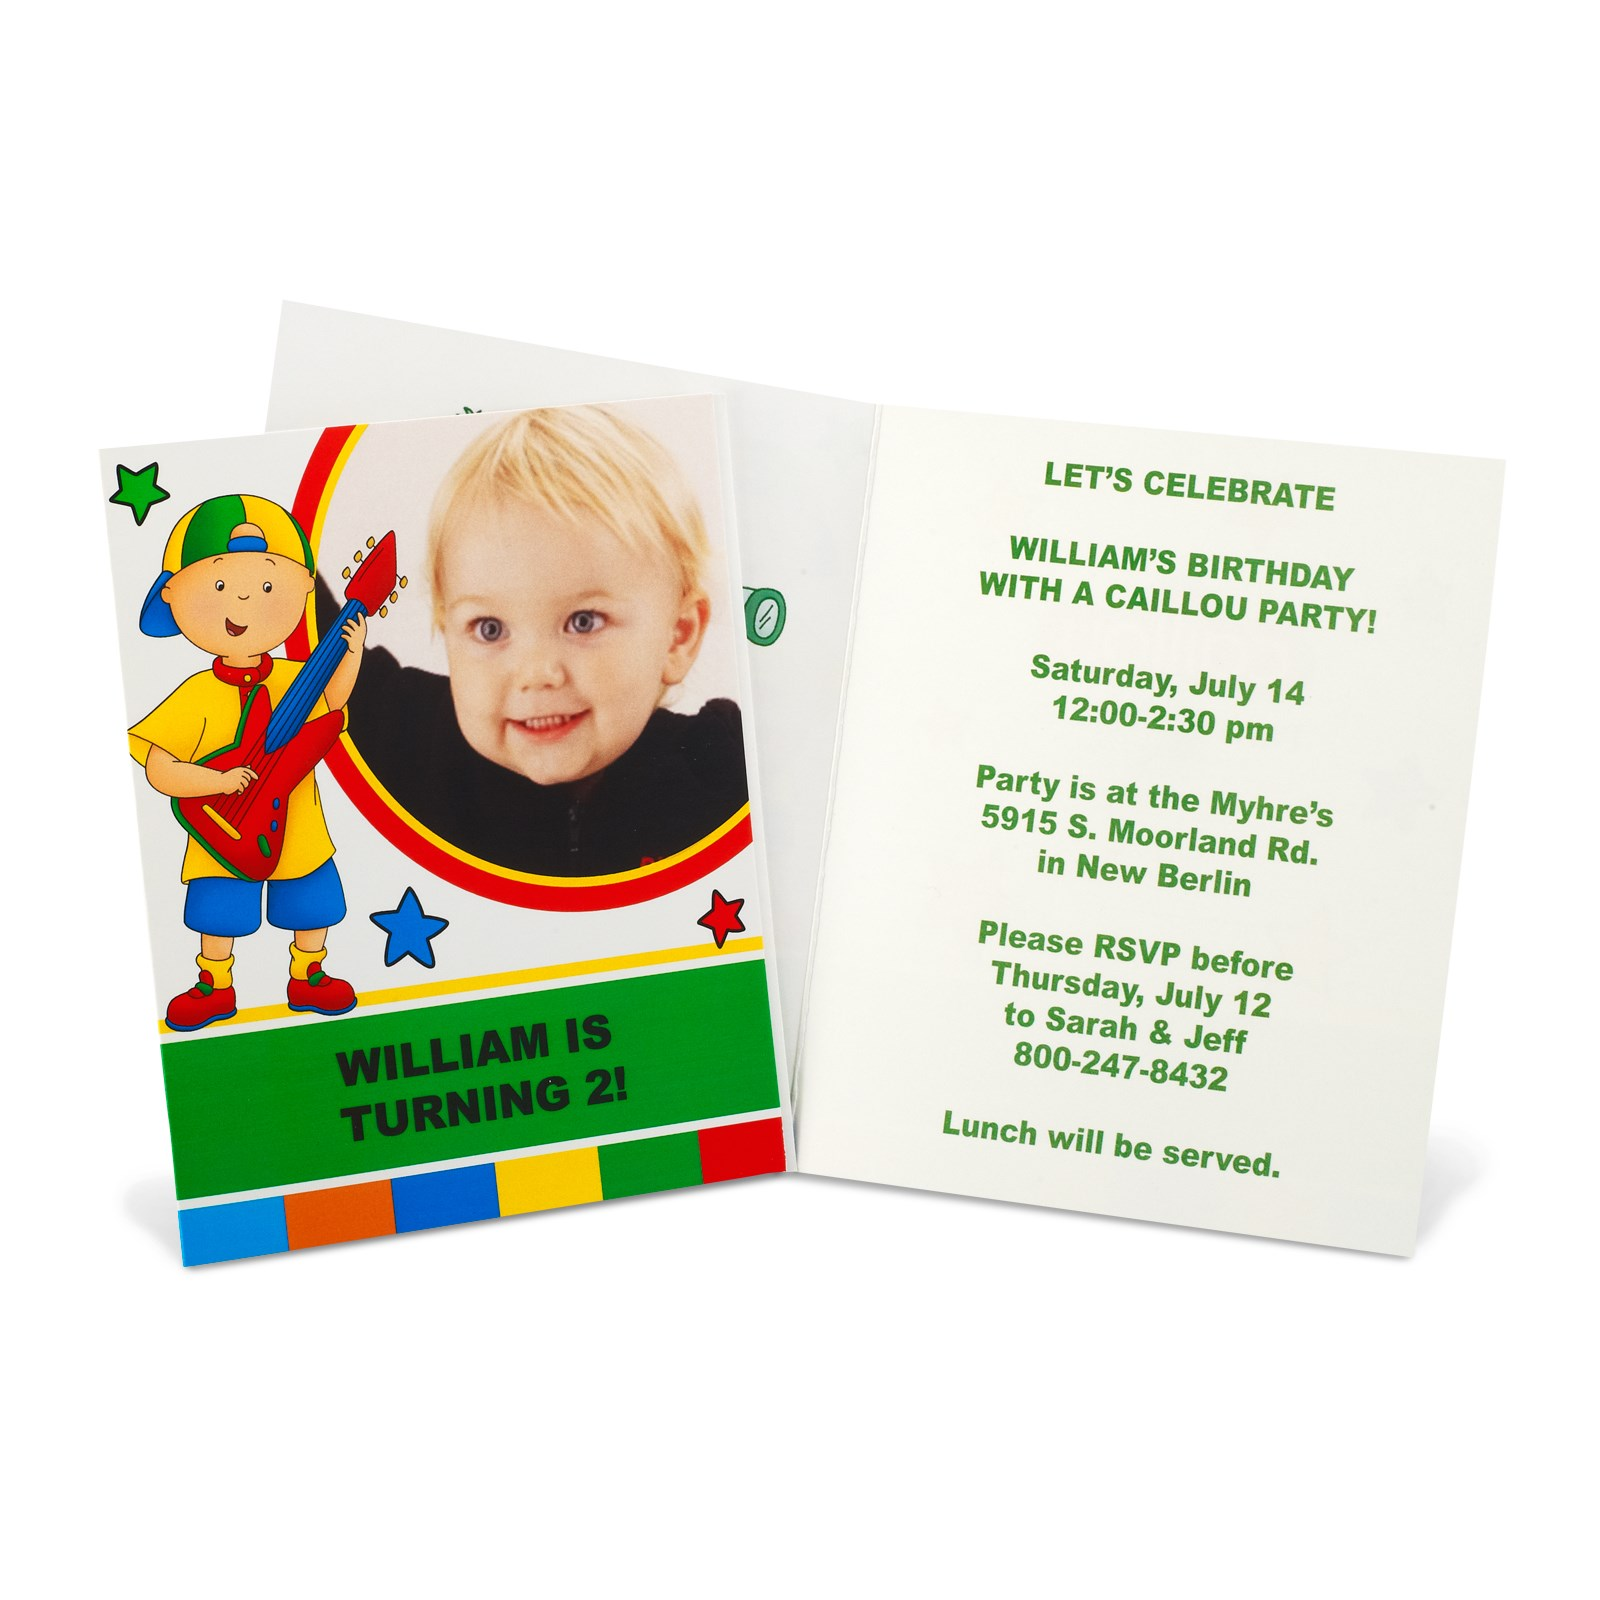 Caillou Personalized Invitations | BirthdayExpress.com